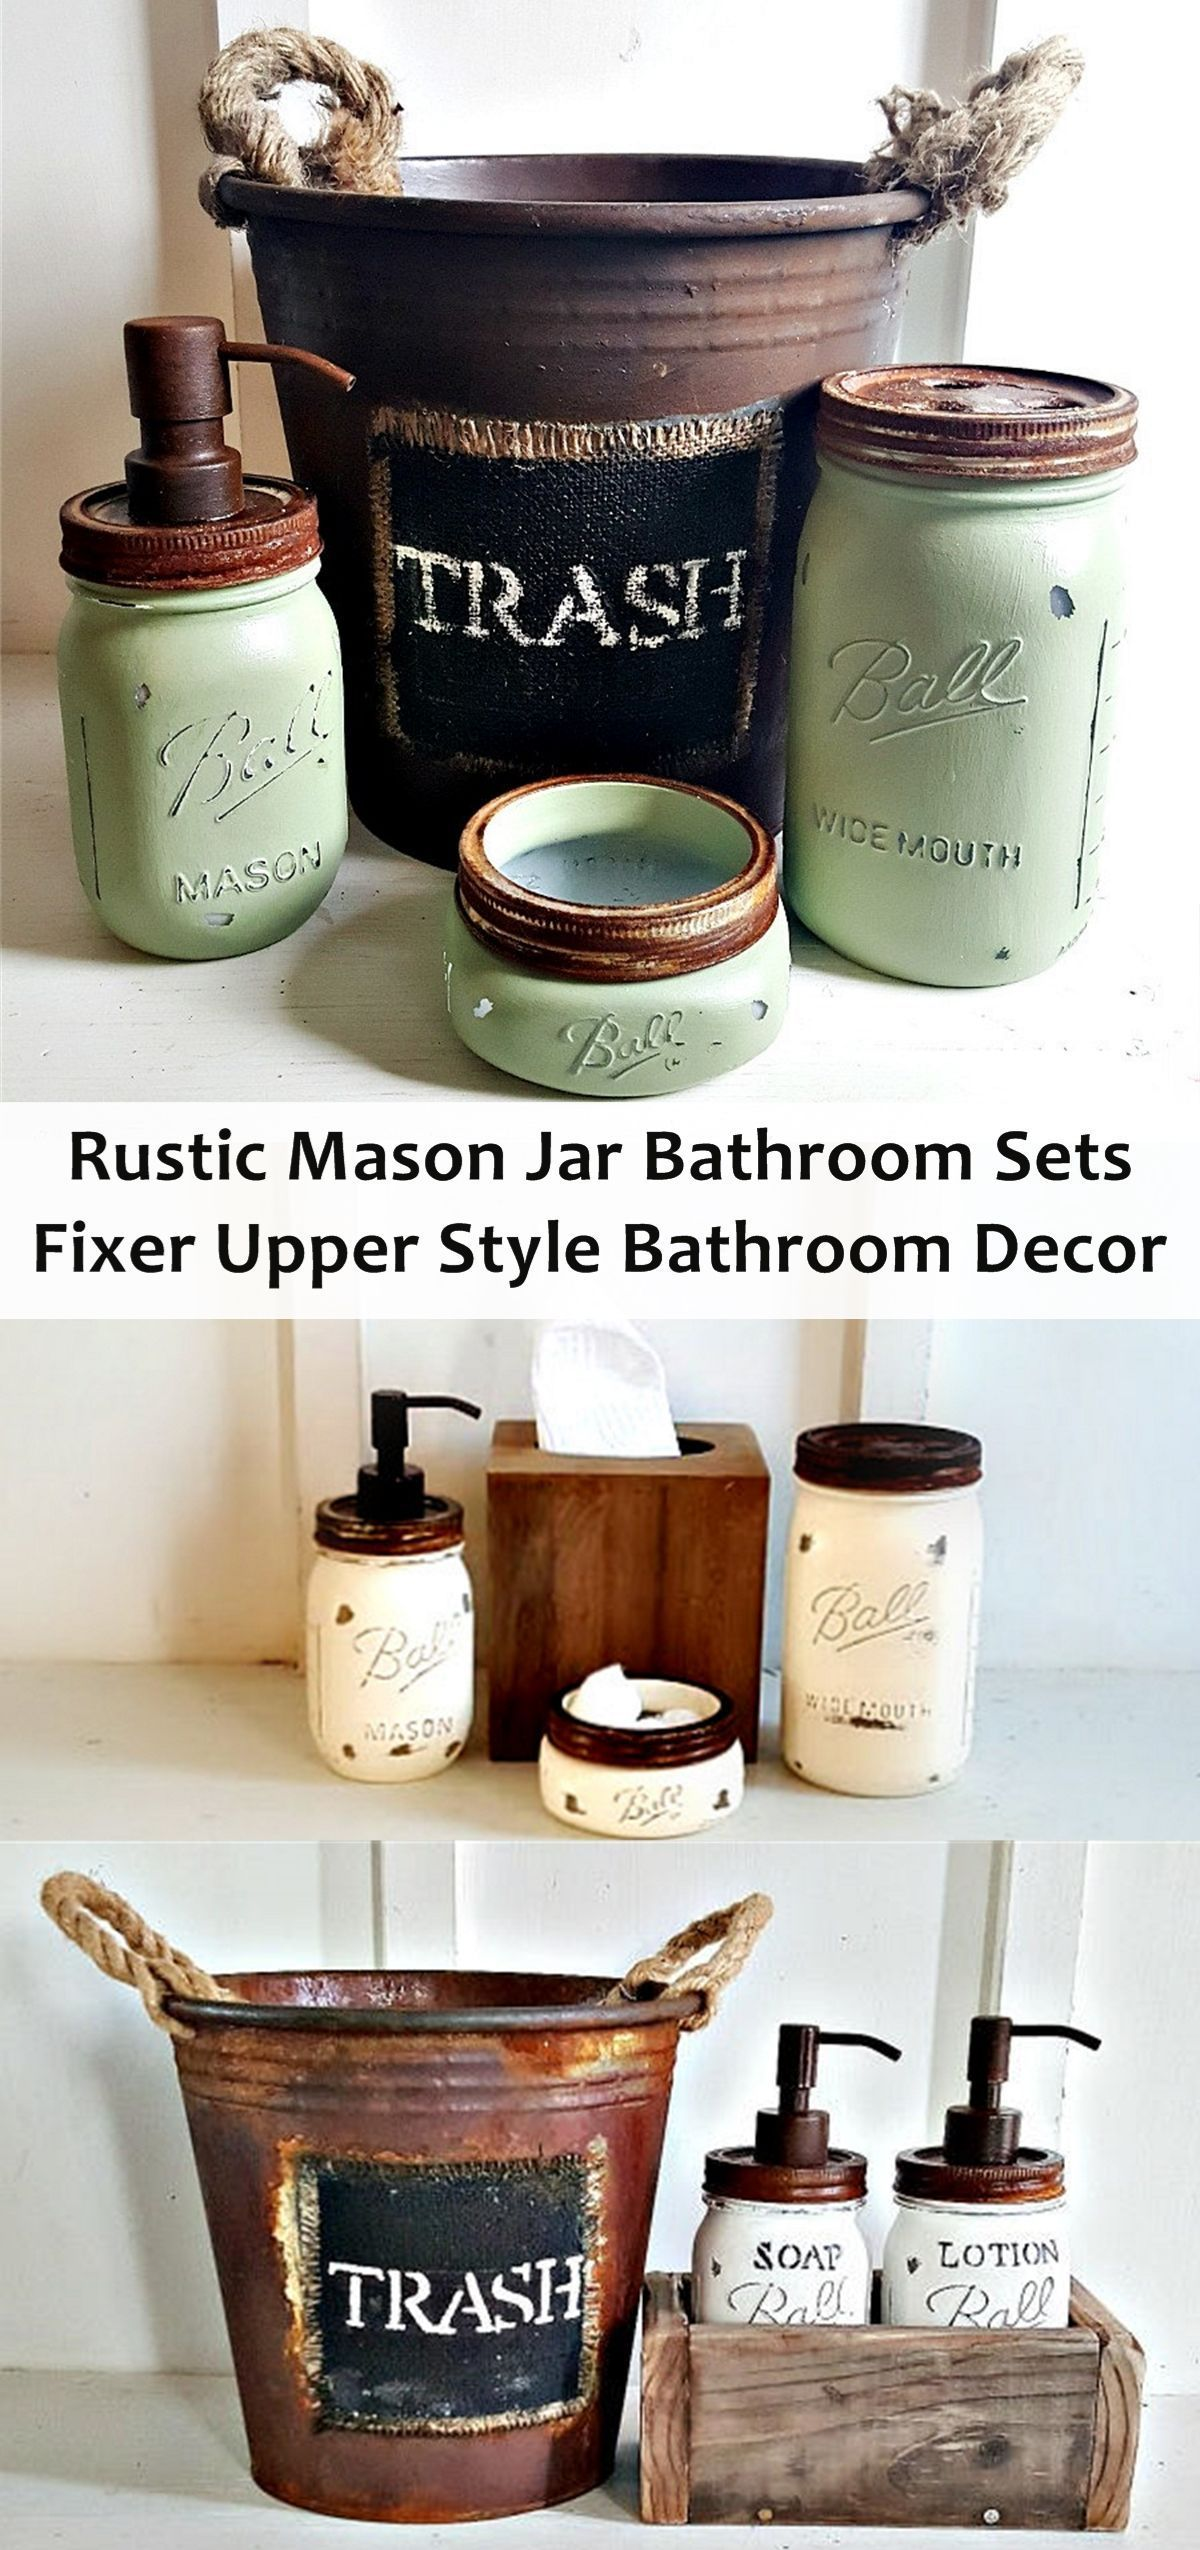 Get The Fixer Upper Look In Your Bathroom With A Rustic Mason Jar Set Mason Jar Bathroom Sets Rustic Rustic Bathroom Decor Mason Jar Bathroom Rustic Bathroom